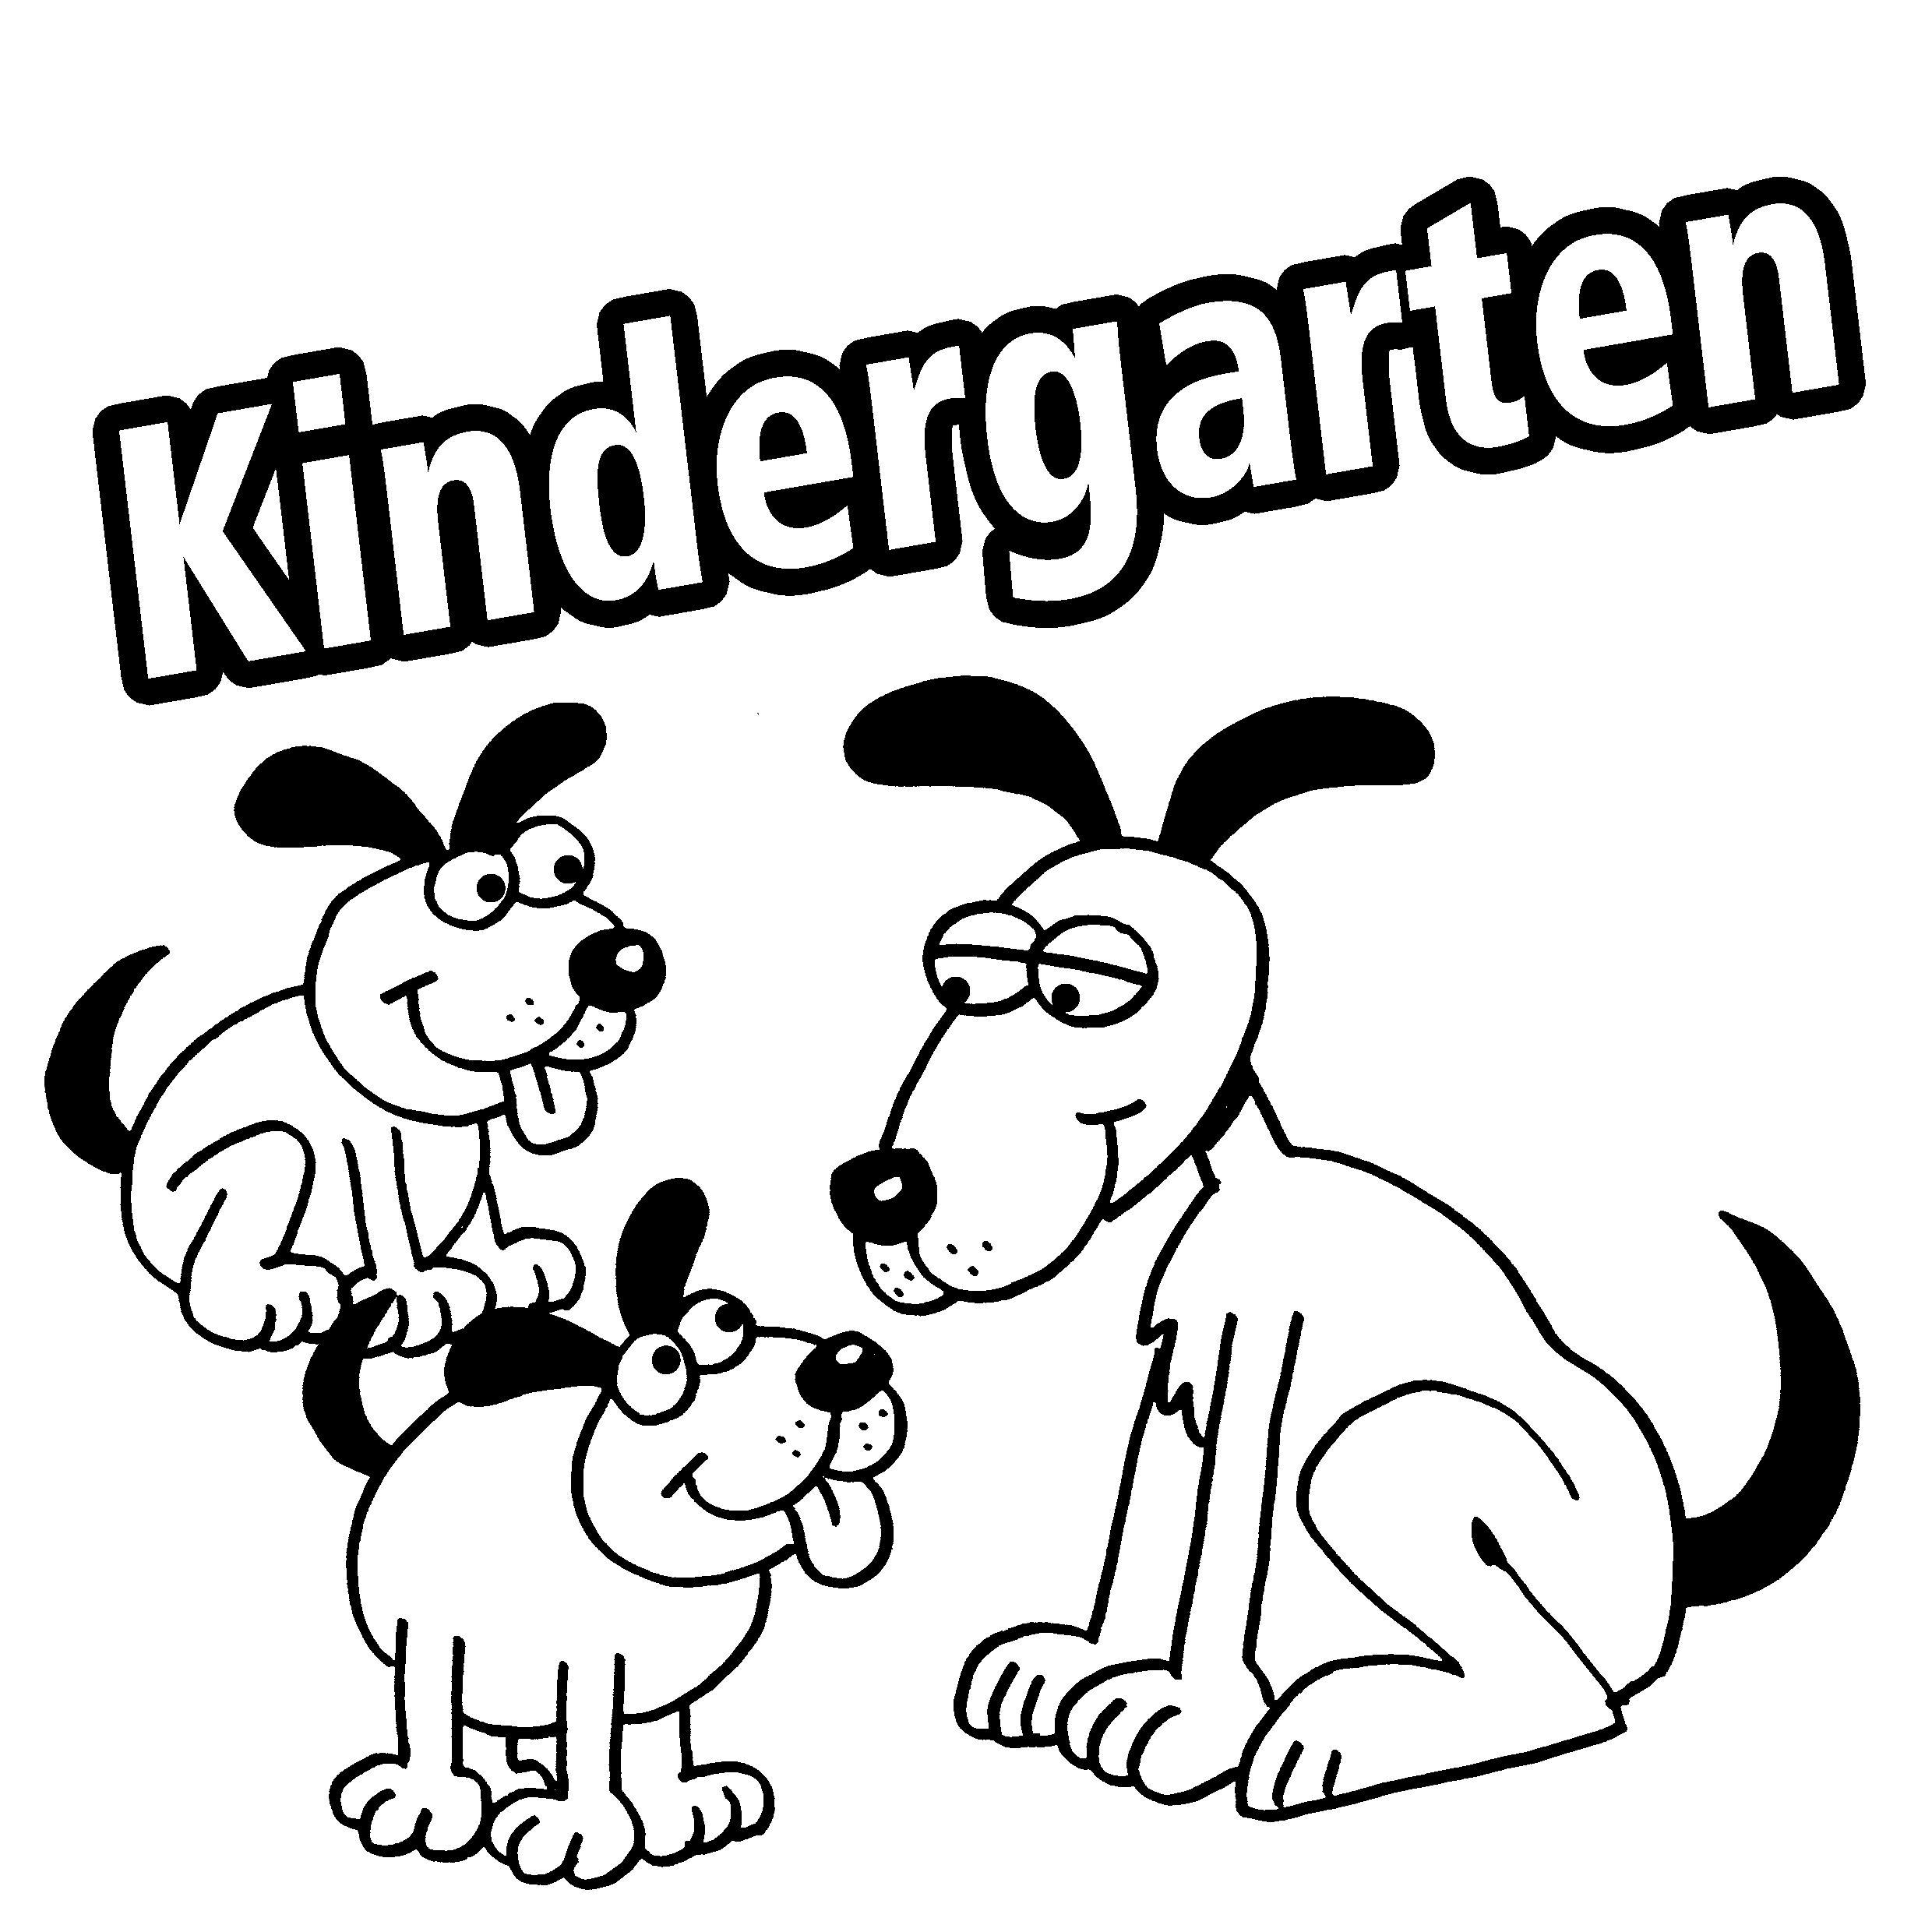 Animal doing math clipart black and white banner free download Math Black And White | Free download best Math Black And White on ... banner free download